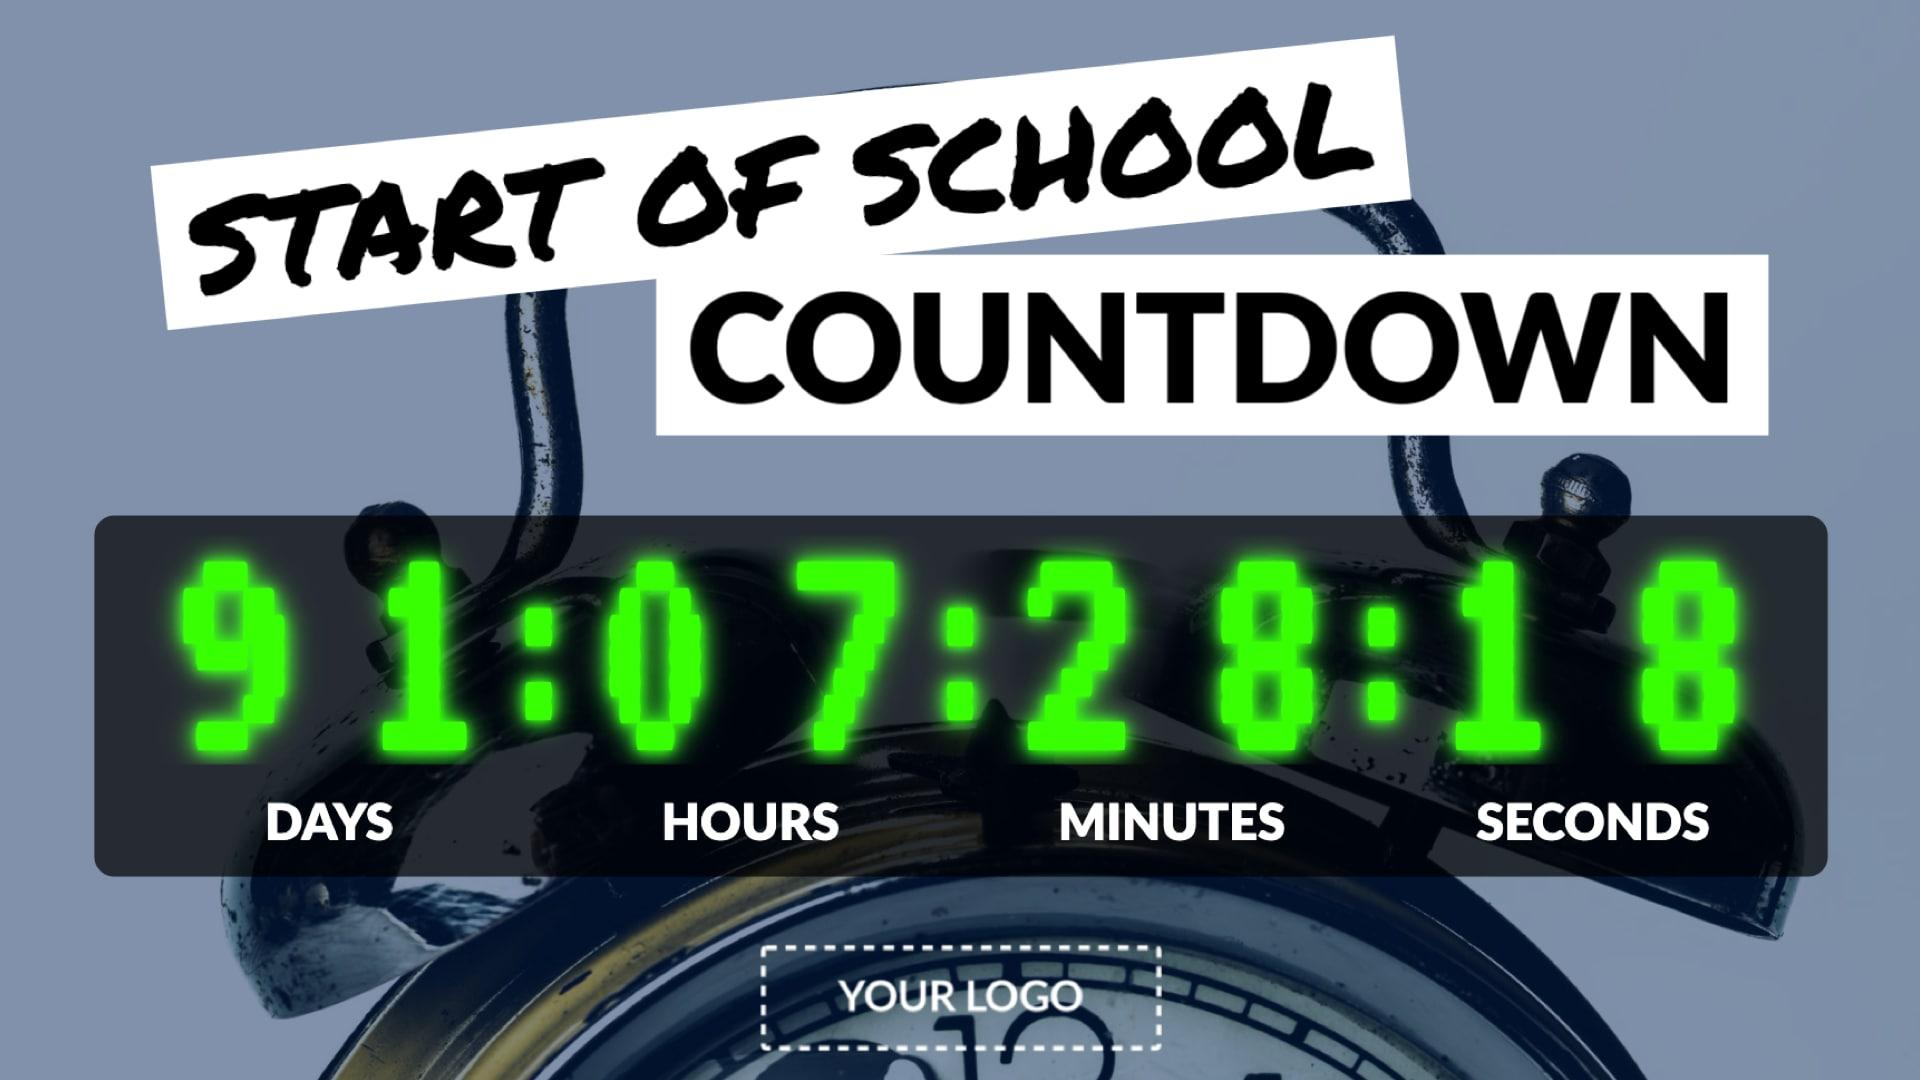 Start of School Countdown Digital Signage Template